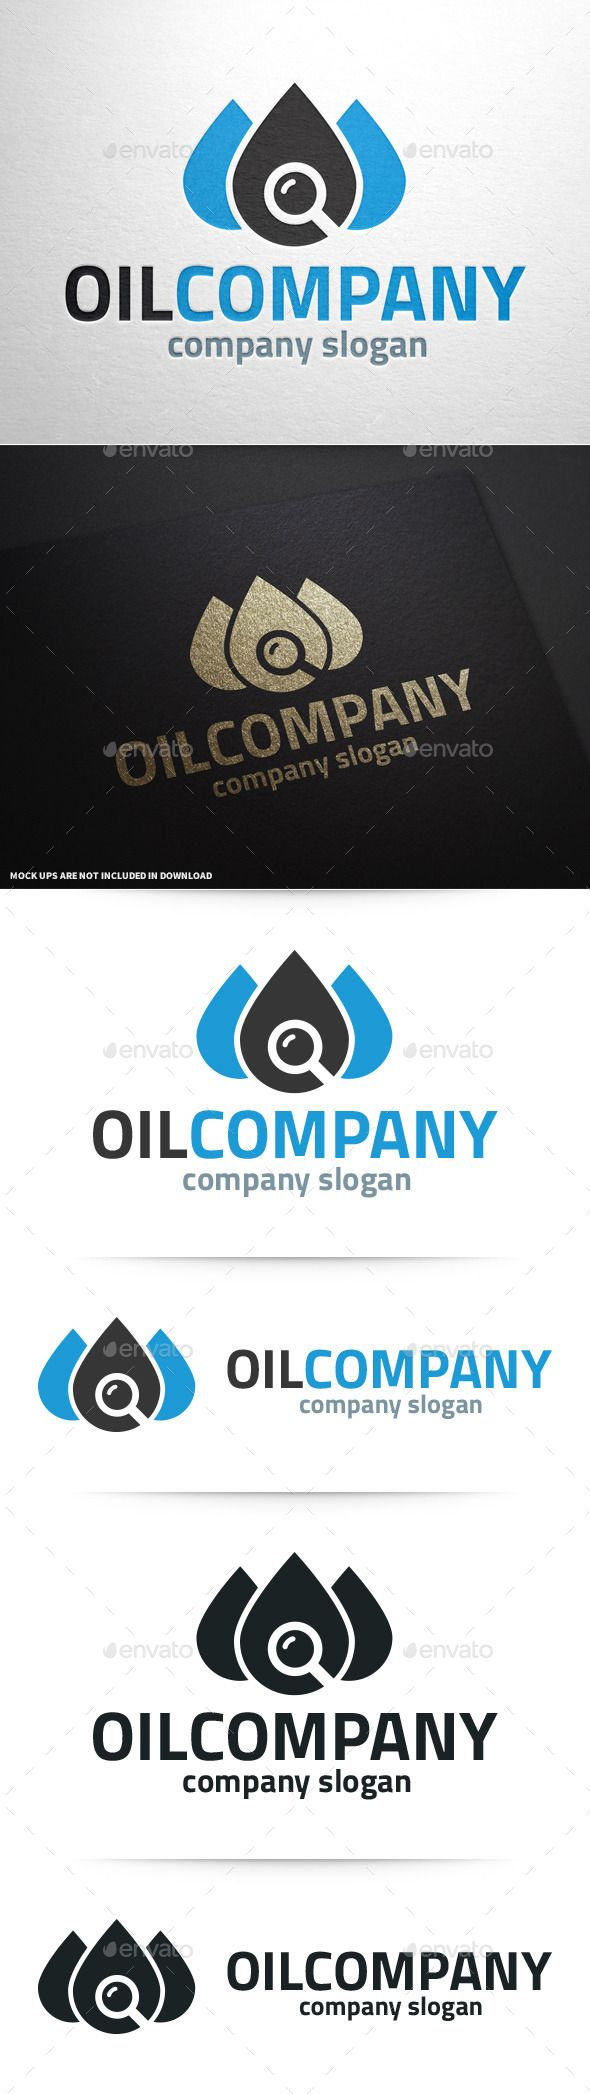 Oil Company Logo v2 - #logo #template #logodesign #oil #company #search #tracker #industry #business #vector #eps #ai #psd #graphicriver #envato #buy #sale